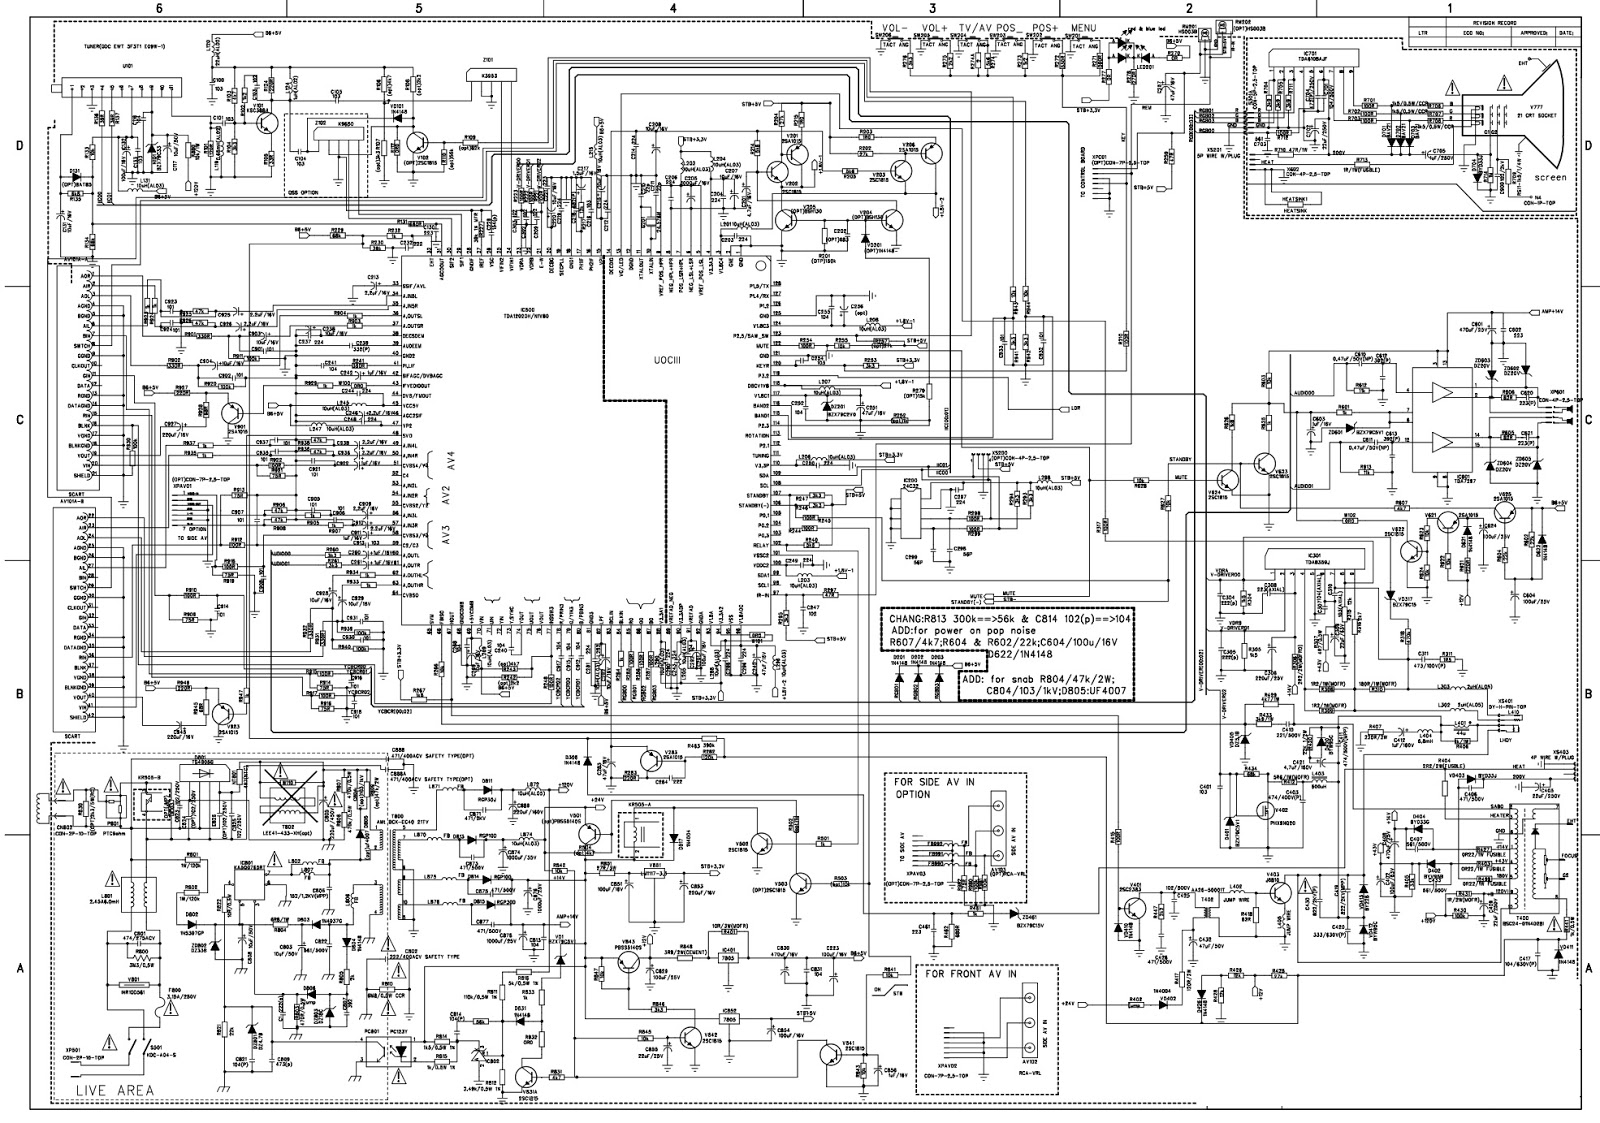 videocon%2B21%2Binch%2Bflat%2Btv videocon 21 inch ctvs circuit diagrams tda 12135 and tda12020h samsung led tv wiring diagram at bakdesigns.co